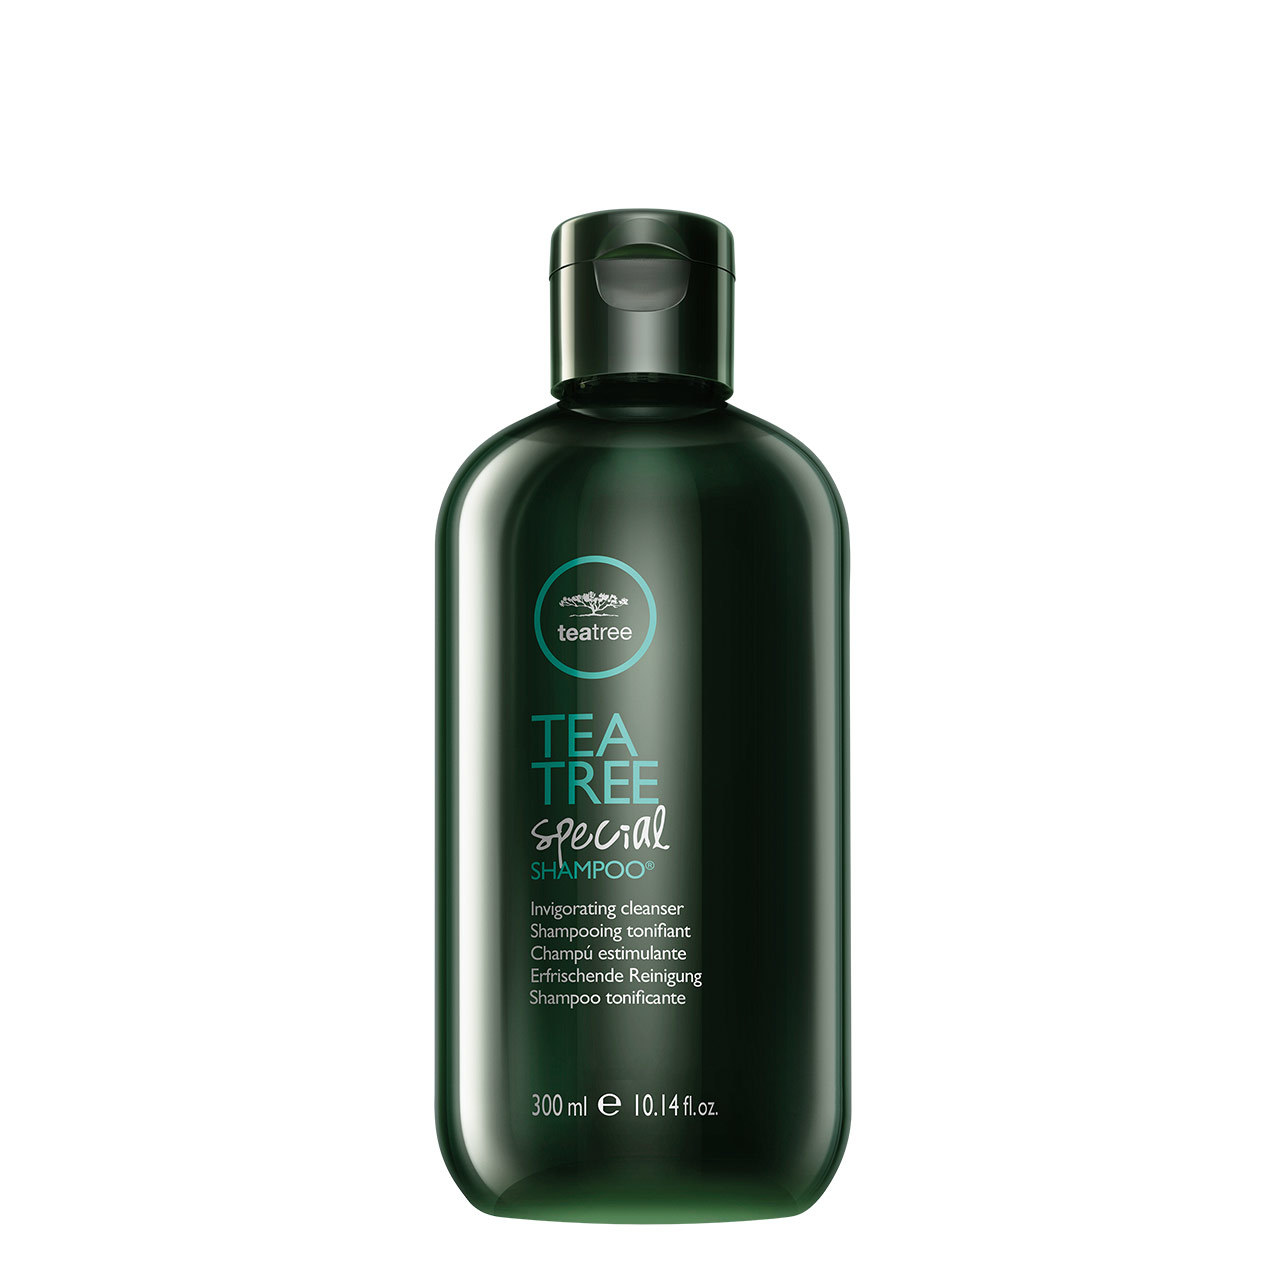 Tea Tree Special Shampoo® obsah (ml): 300ml